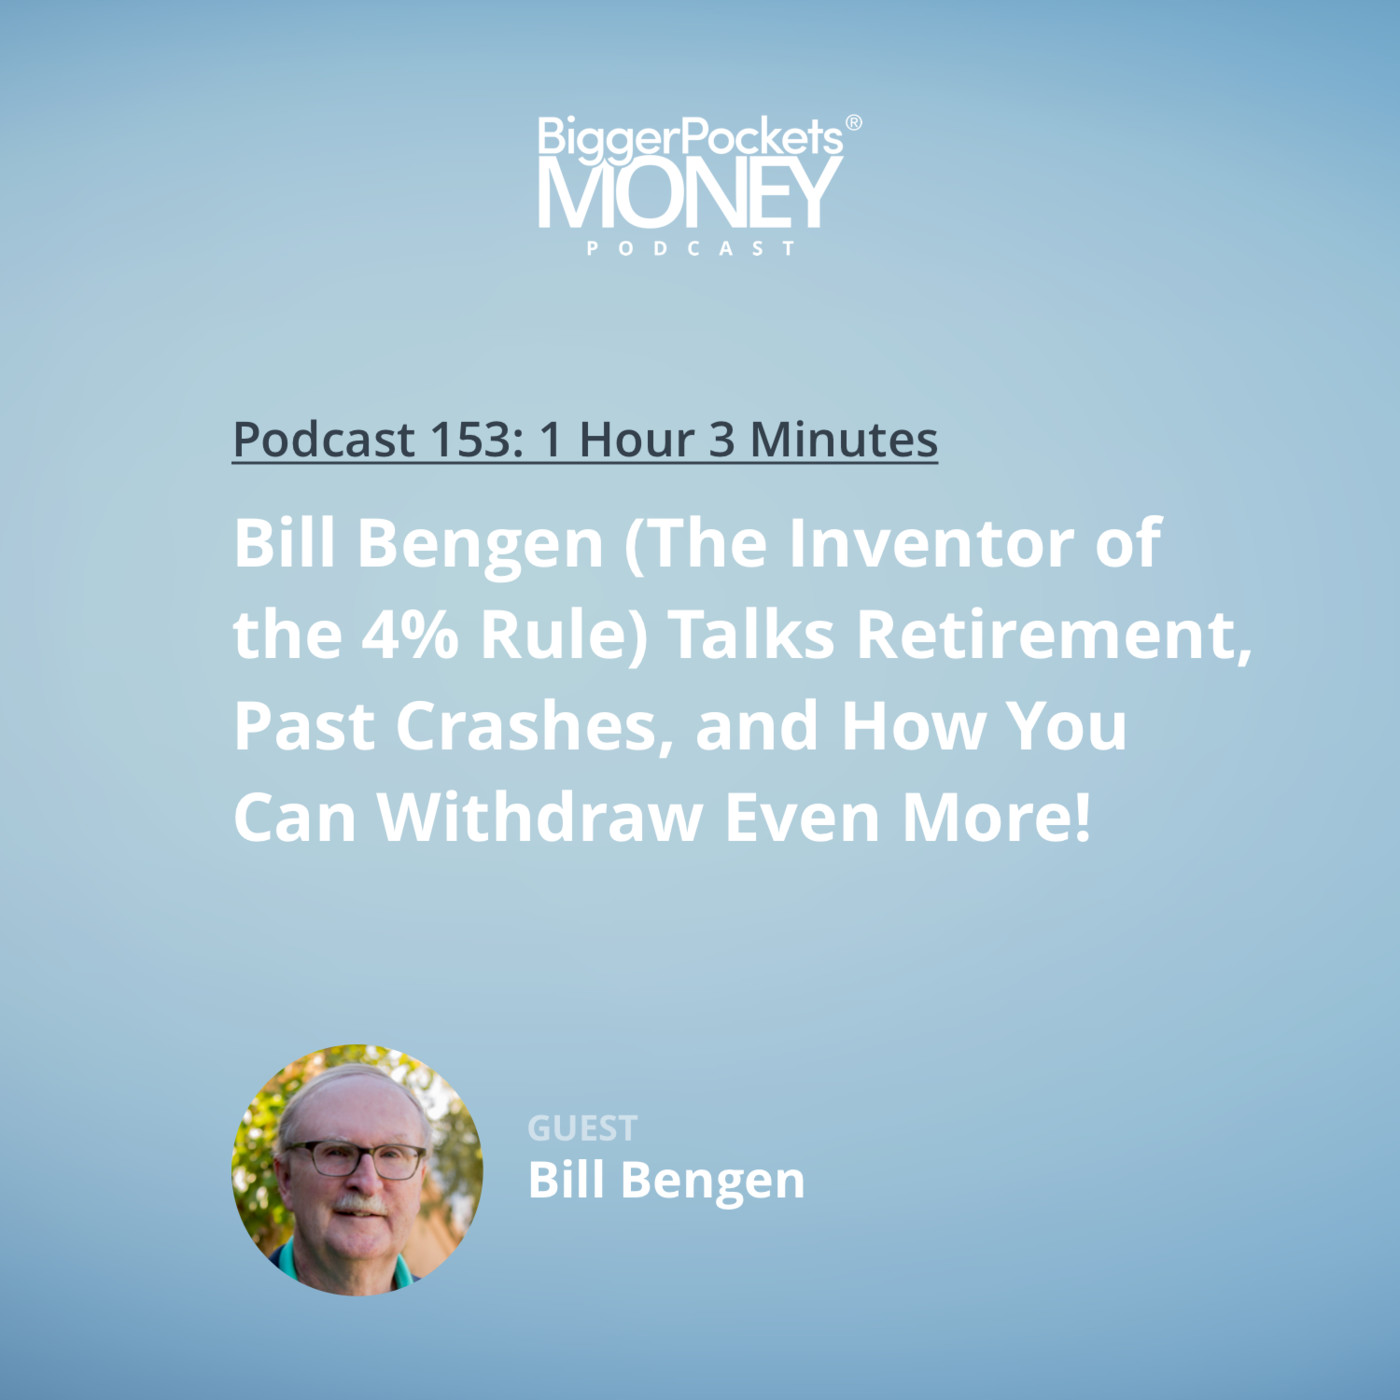 153: Bill Bengen (The Inventor of the 4% Rule) Talks Retirement, Past Crashes, and How You Can Withdraw Even More!